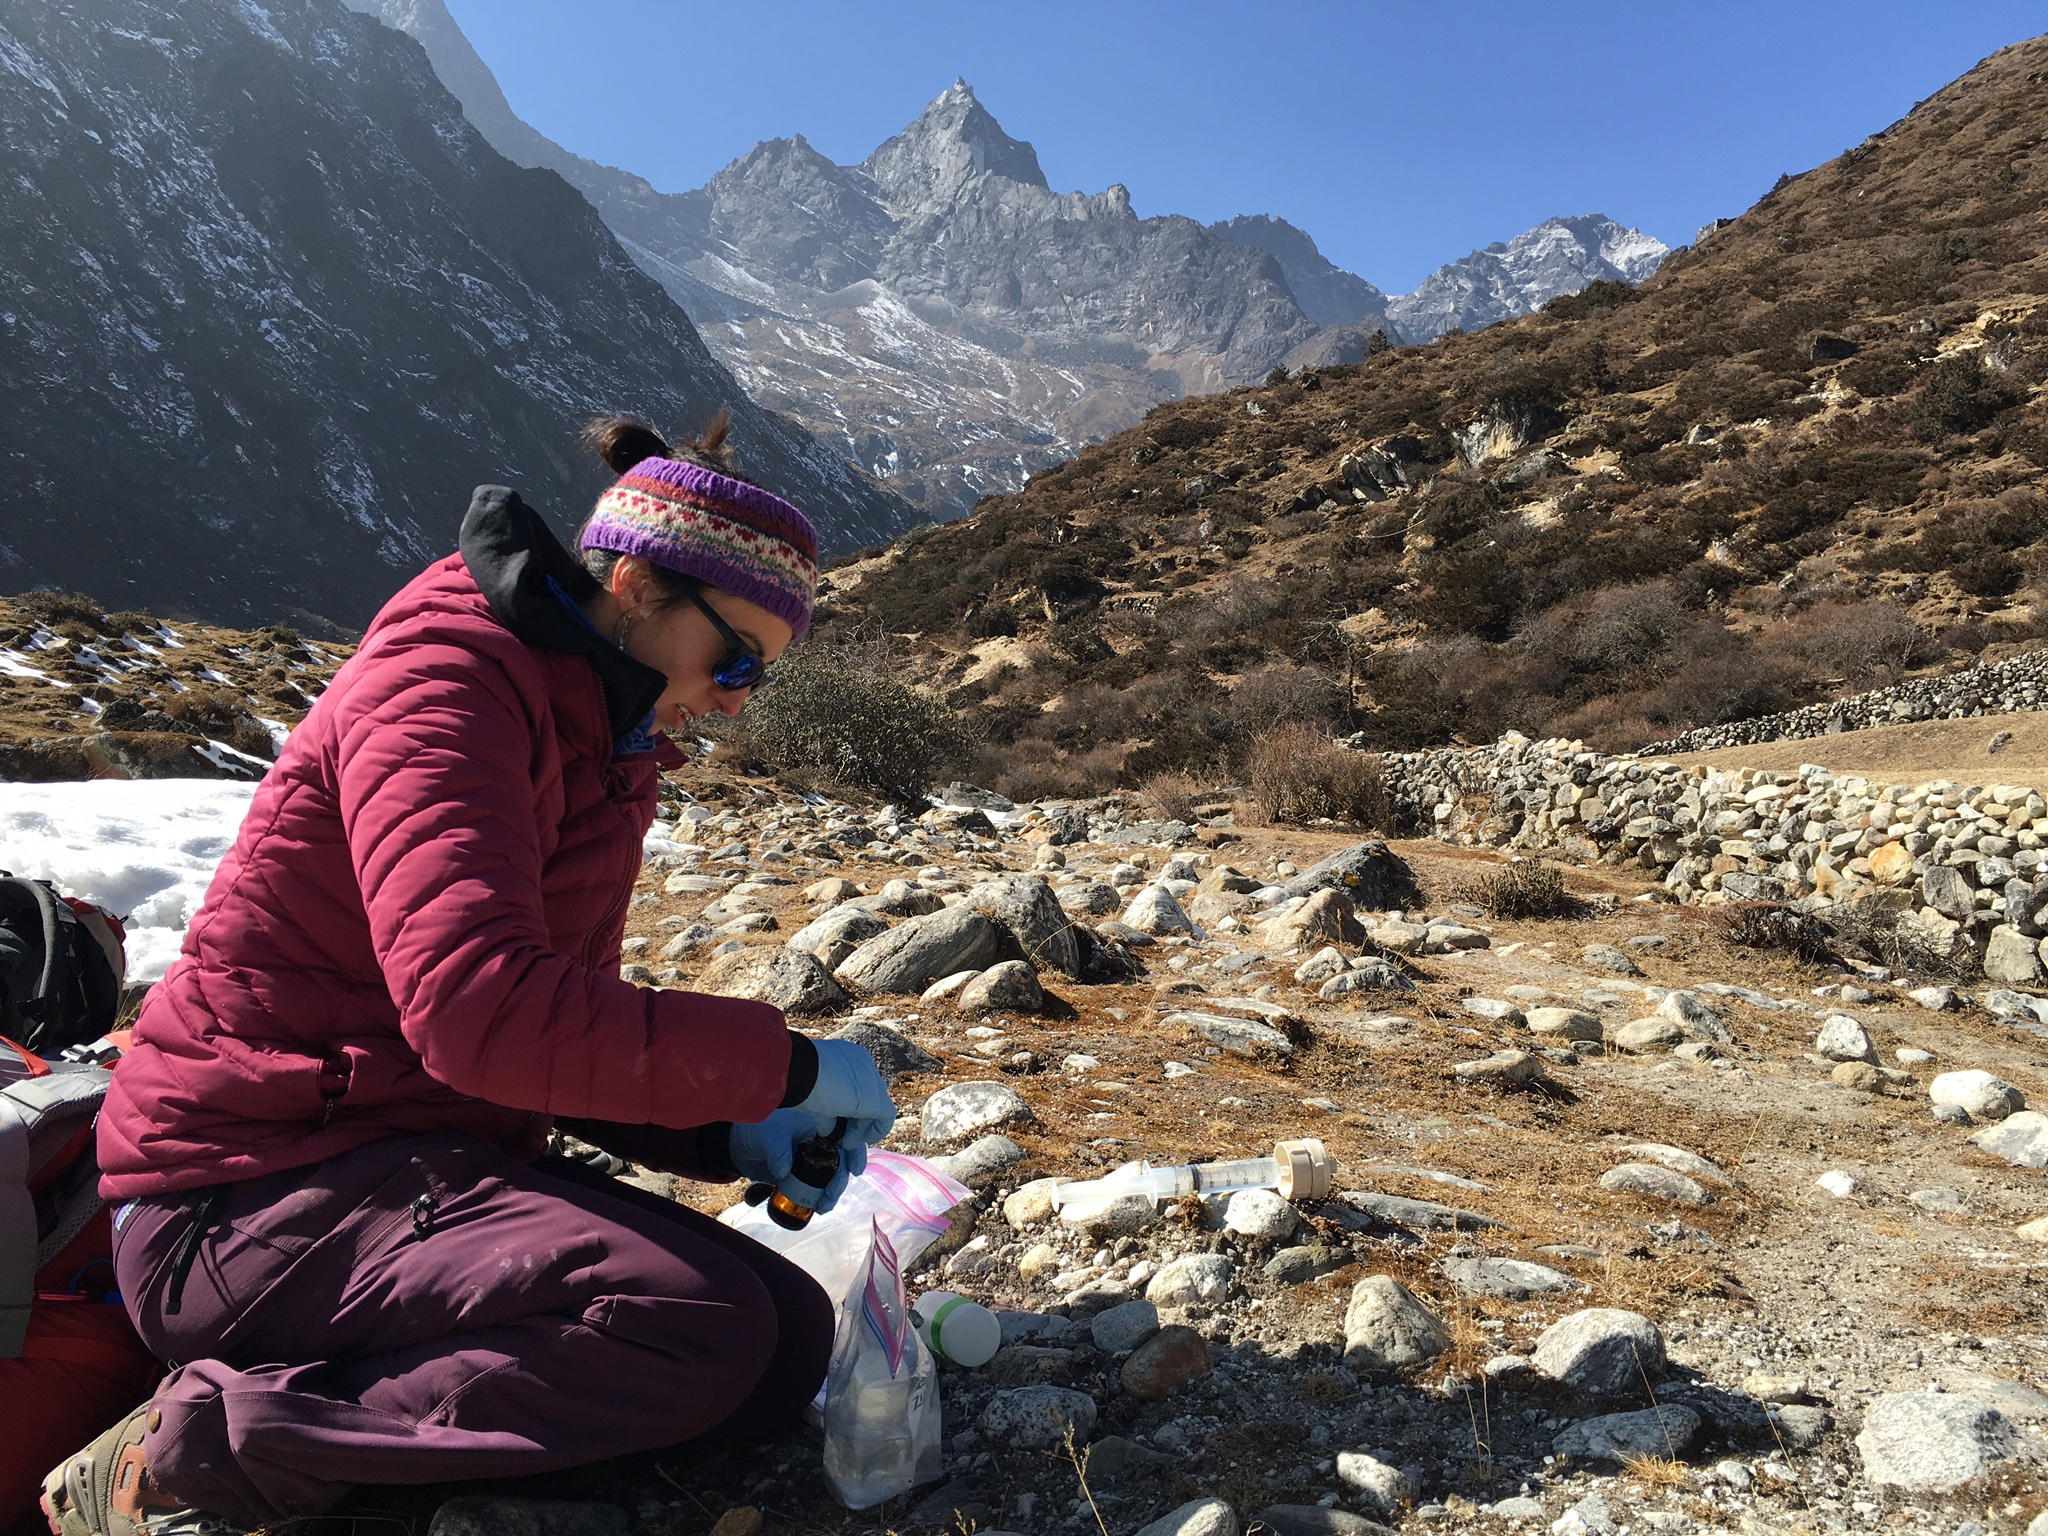 Sampling water in the Gokyo Valley.